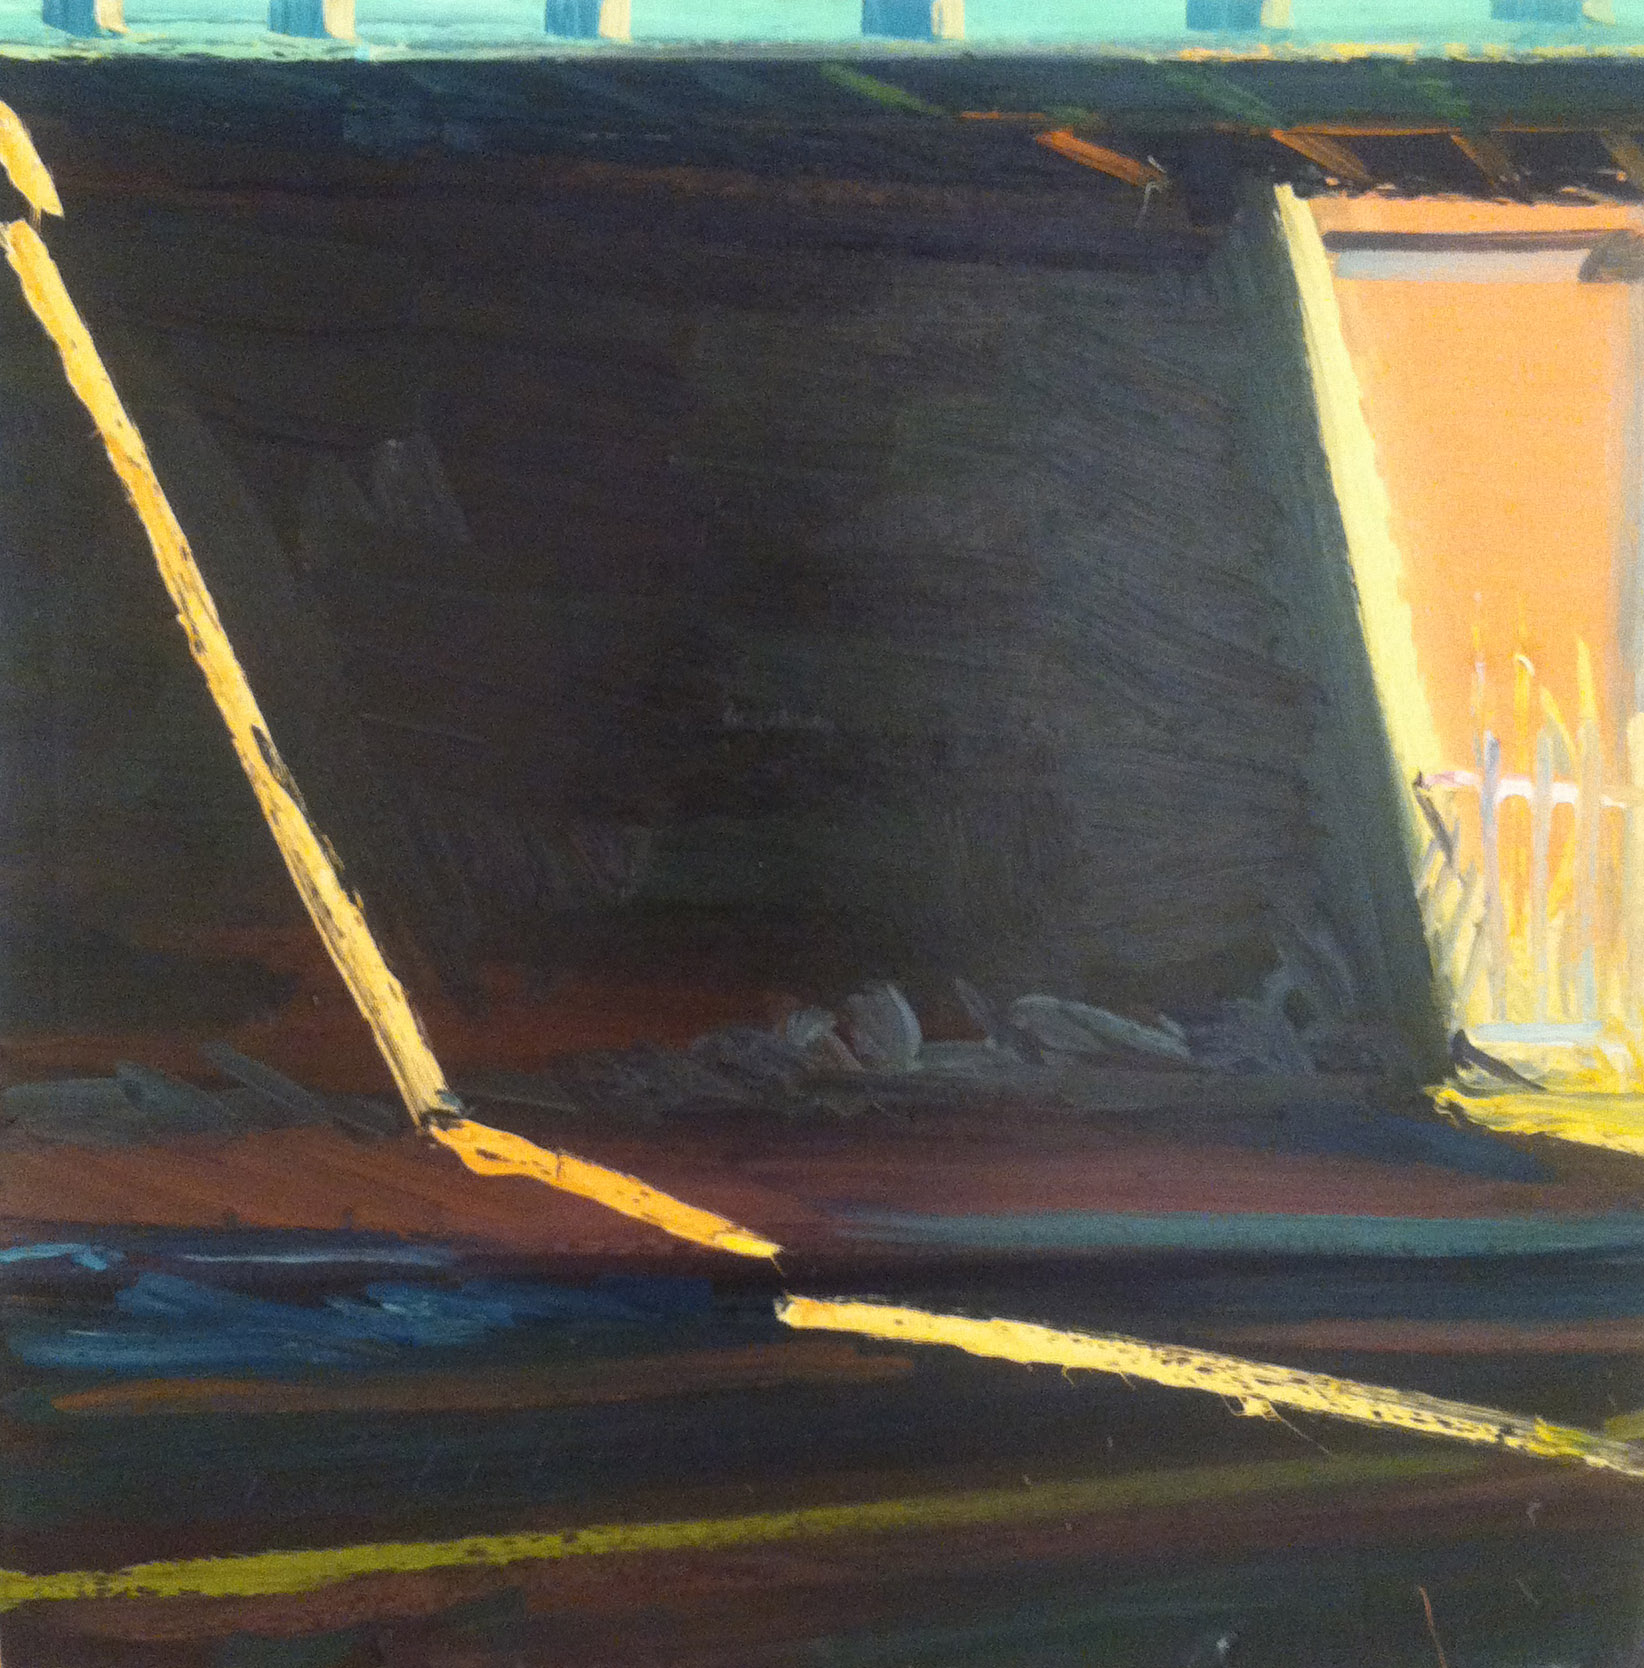 Freeport Light #4,  1984 oil on canvas, 35 3/4 x 36 inches